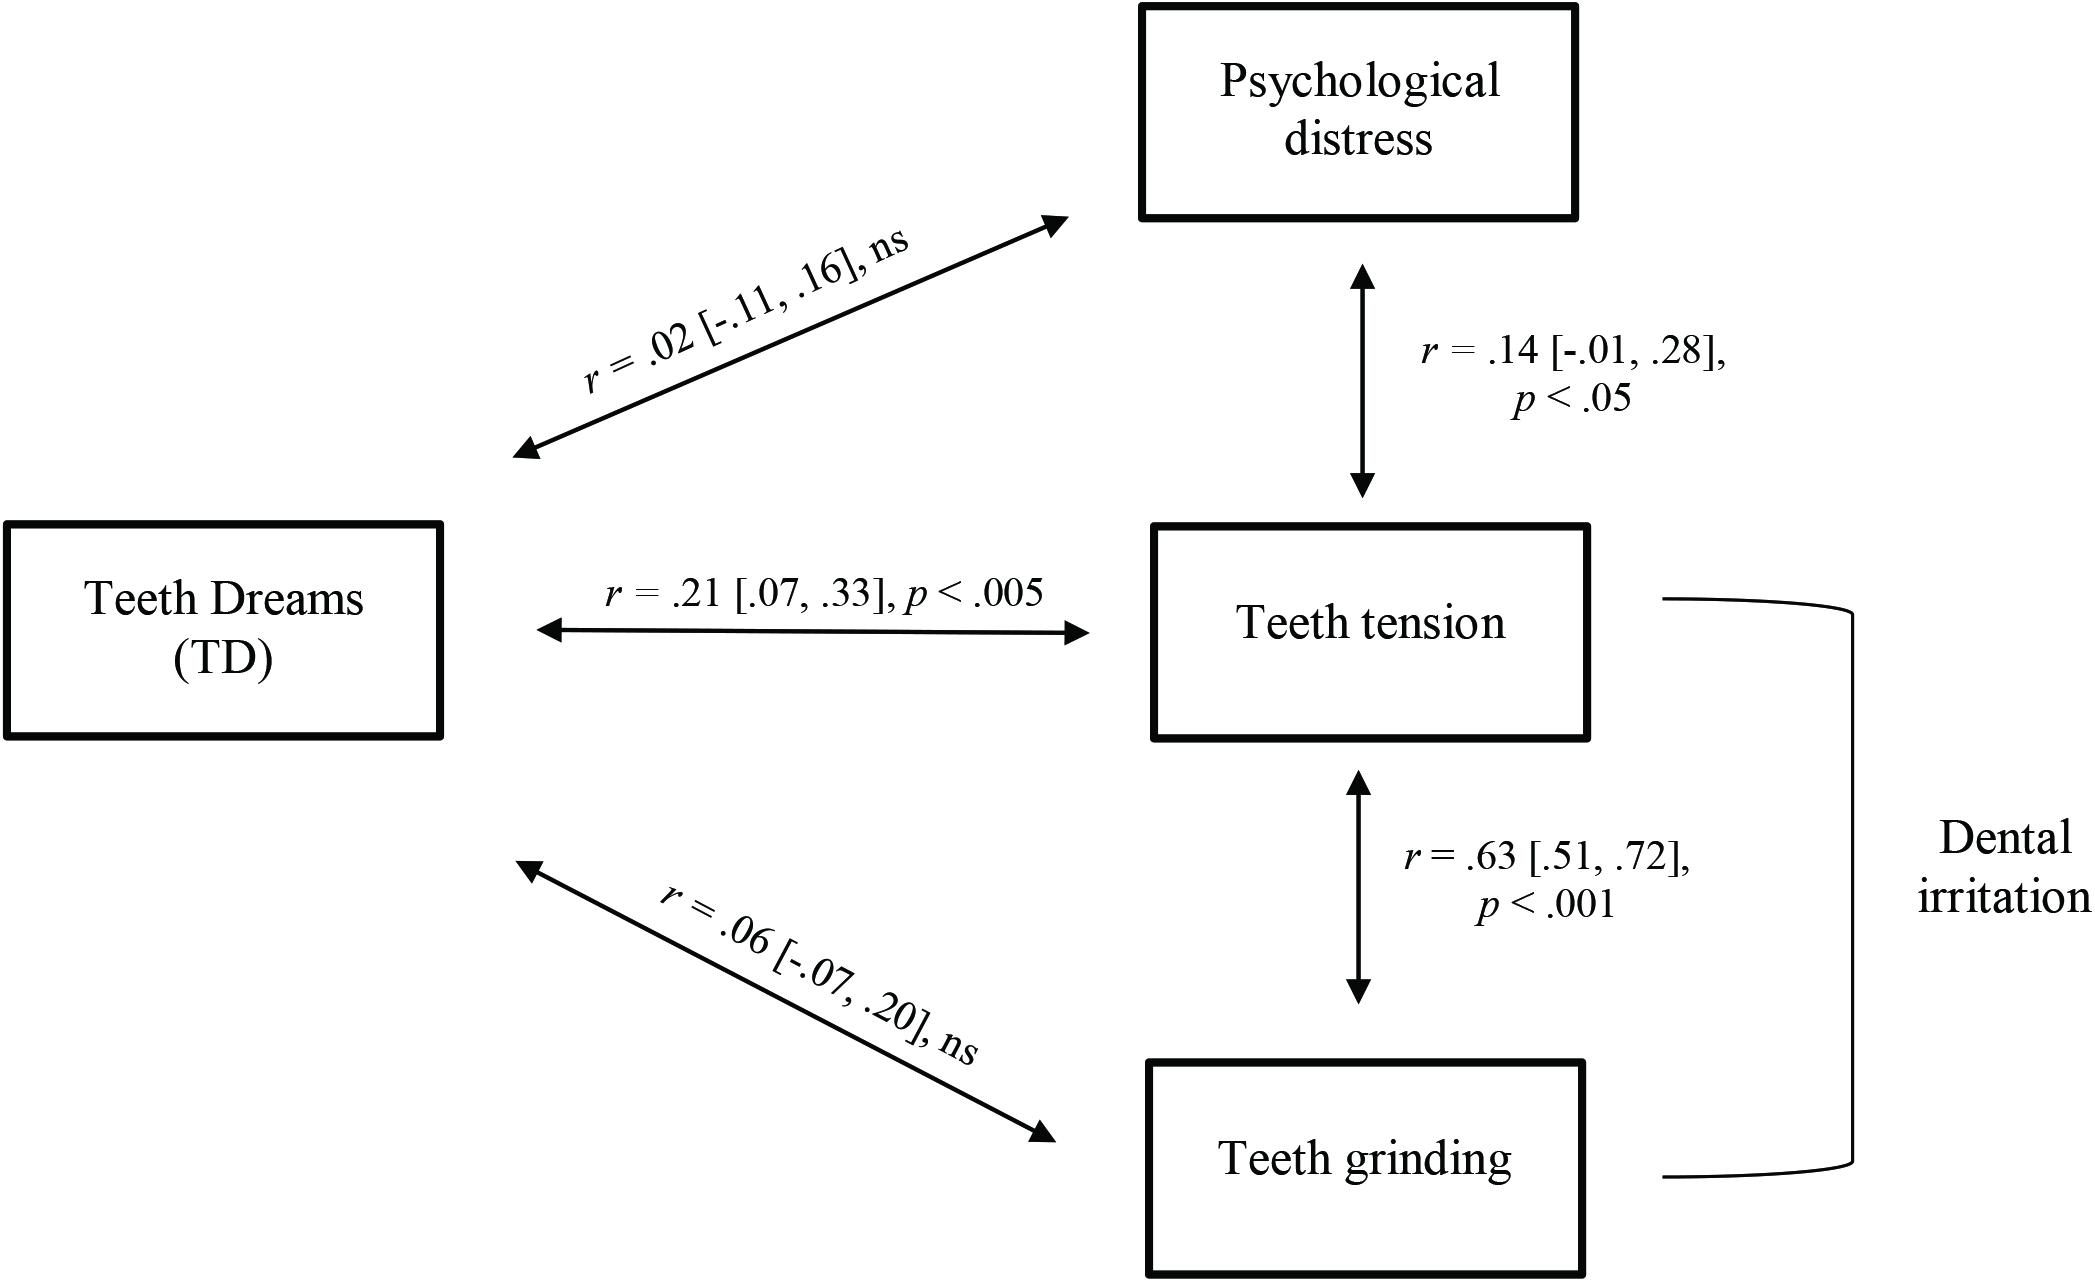 Frontiers | Dreams of Teeth Falling Out: An Empirical Investigation